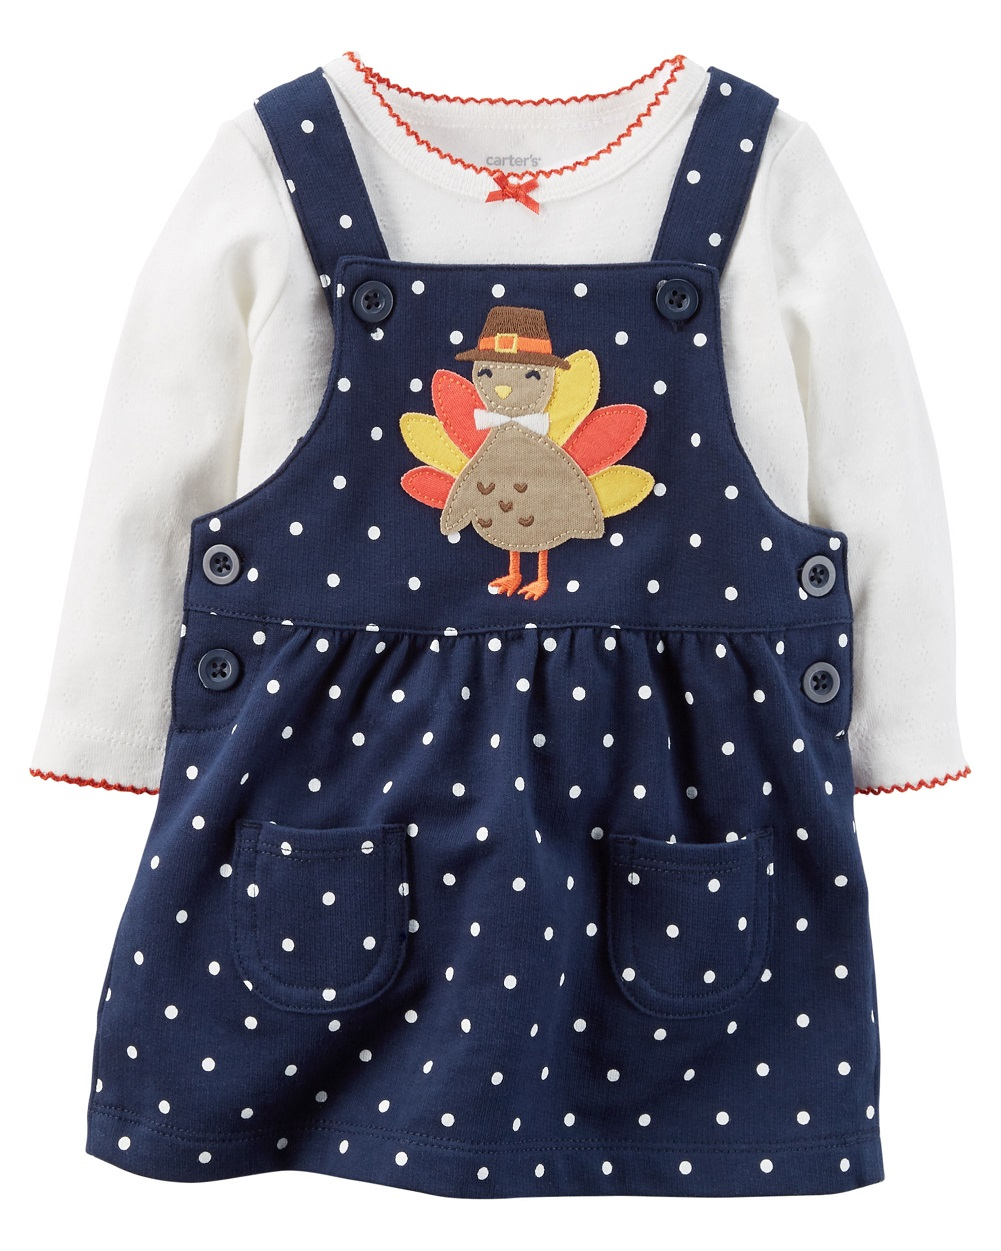 b3365193e Carter's - Carter's Baby Girls' 2-Piece Thanksgiving Bodysuit & Jumper Set,  3 Months - Walmart.com